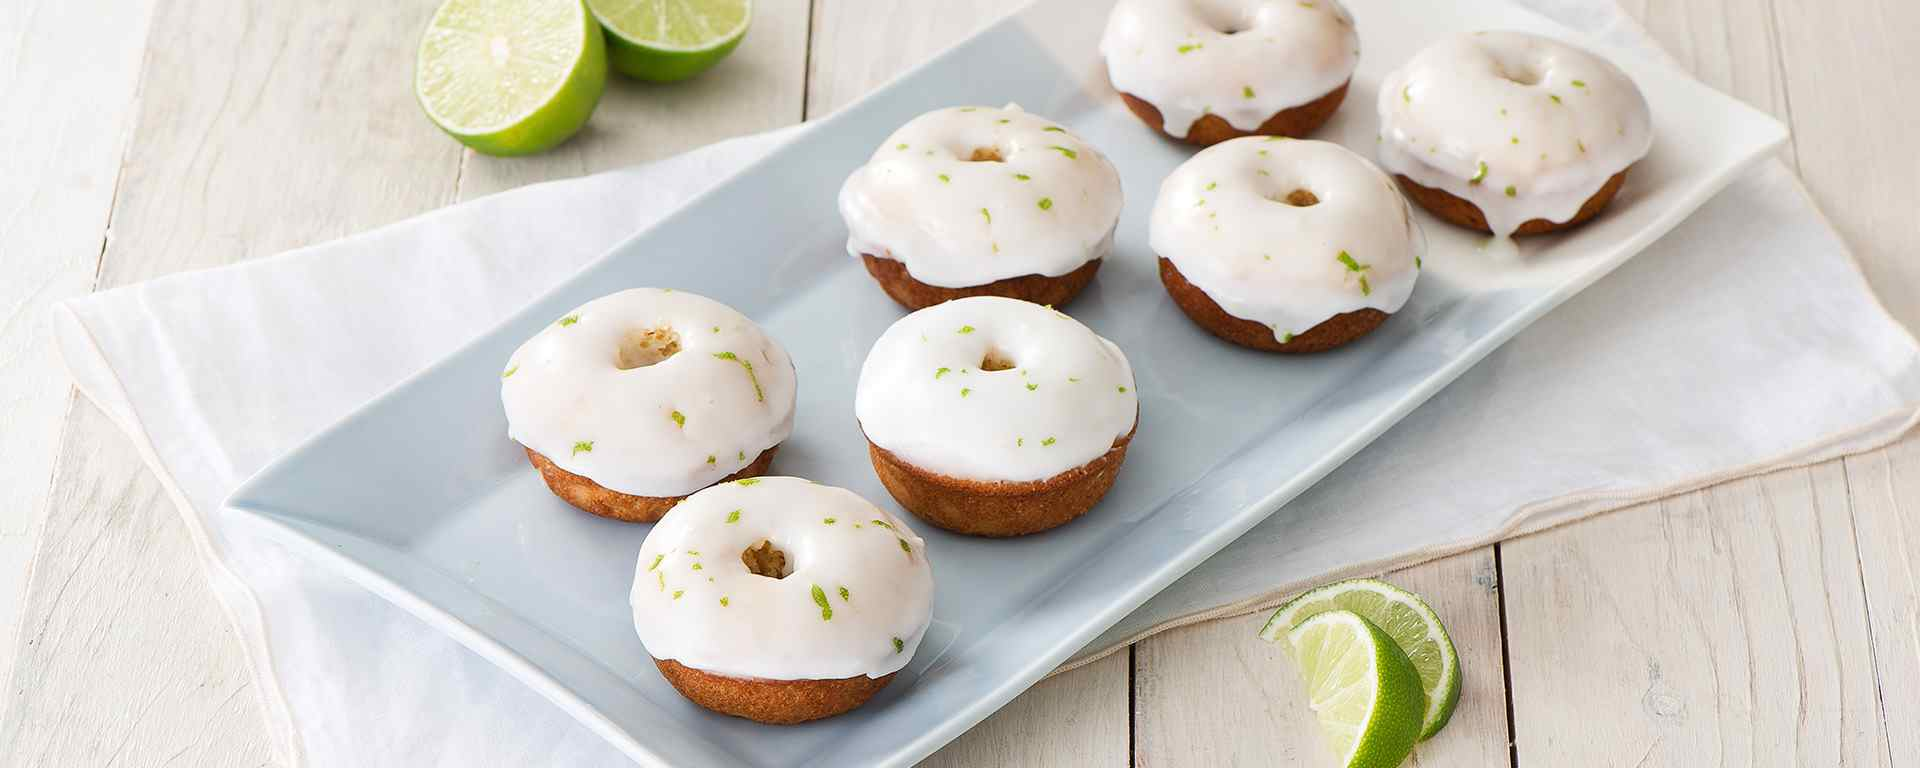 Photo for - Baked Sour Cream Doughnuts with Lime Glaze